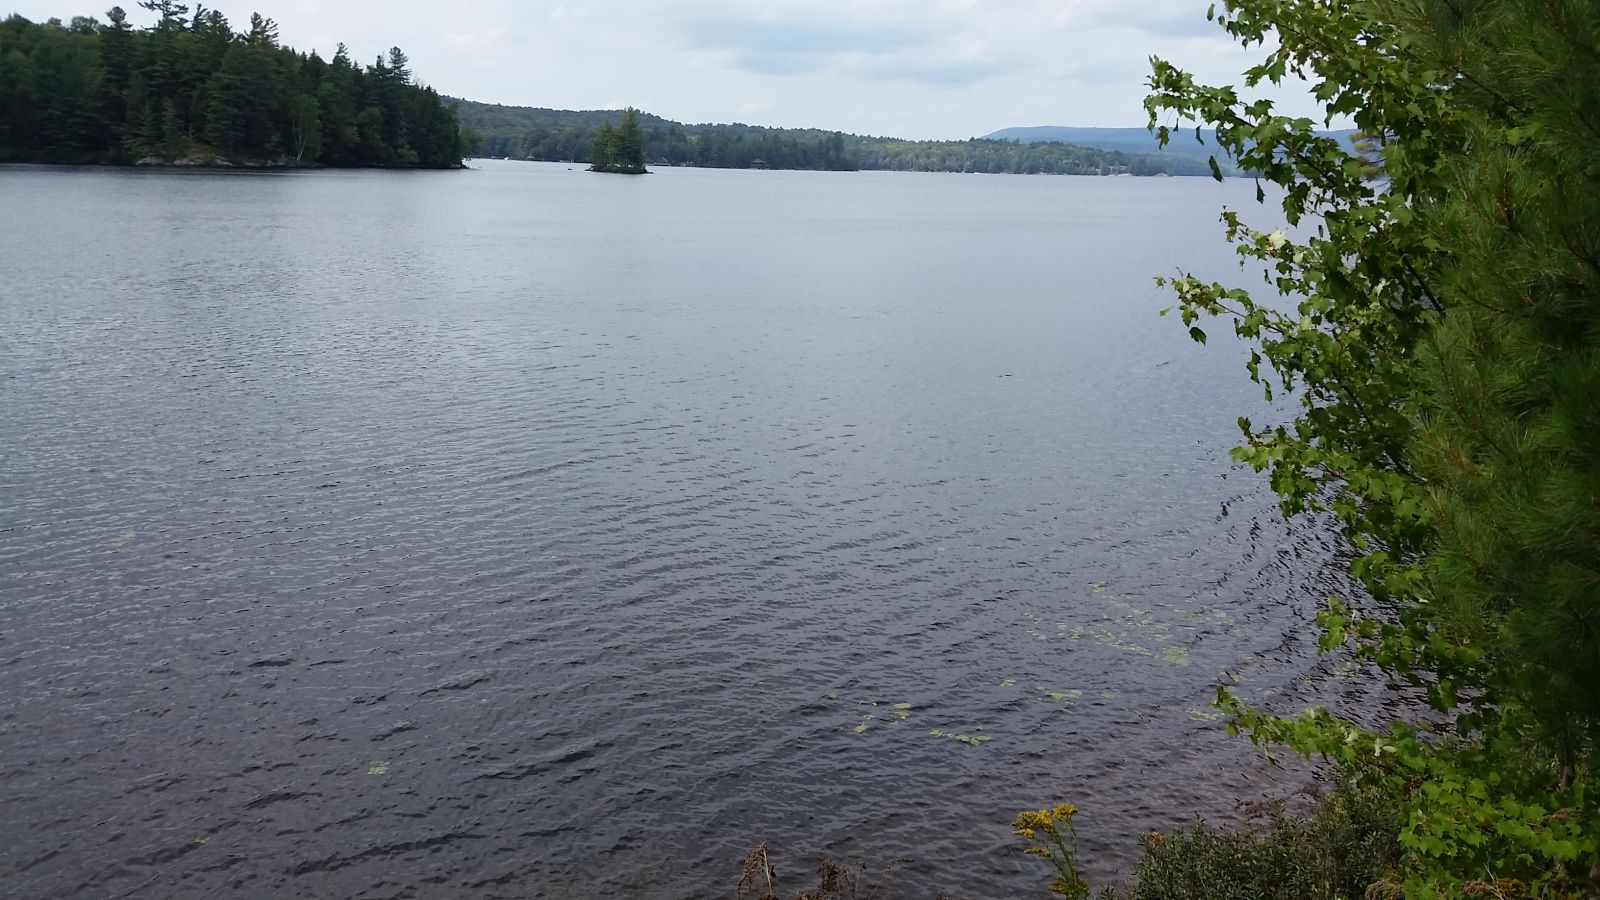 Just look at this view of Tupper Lake!